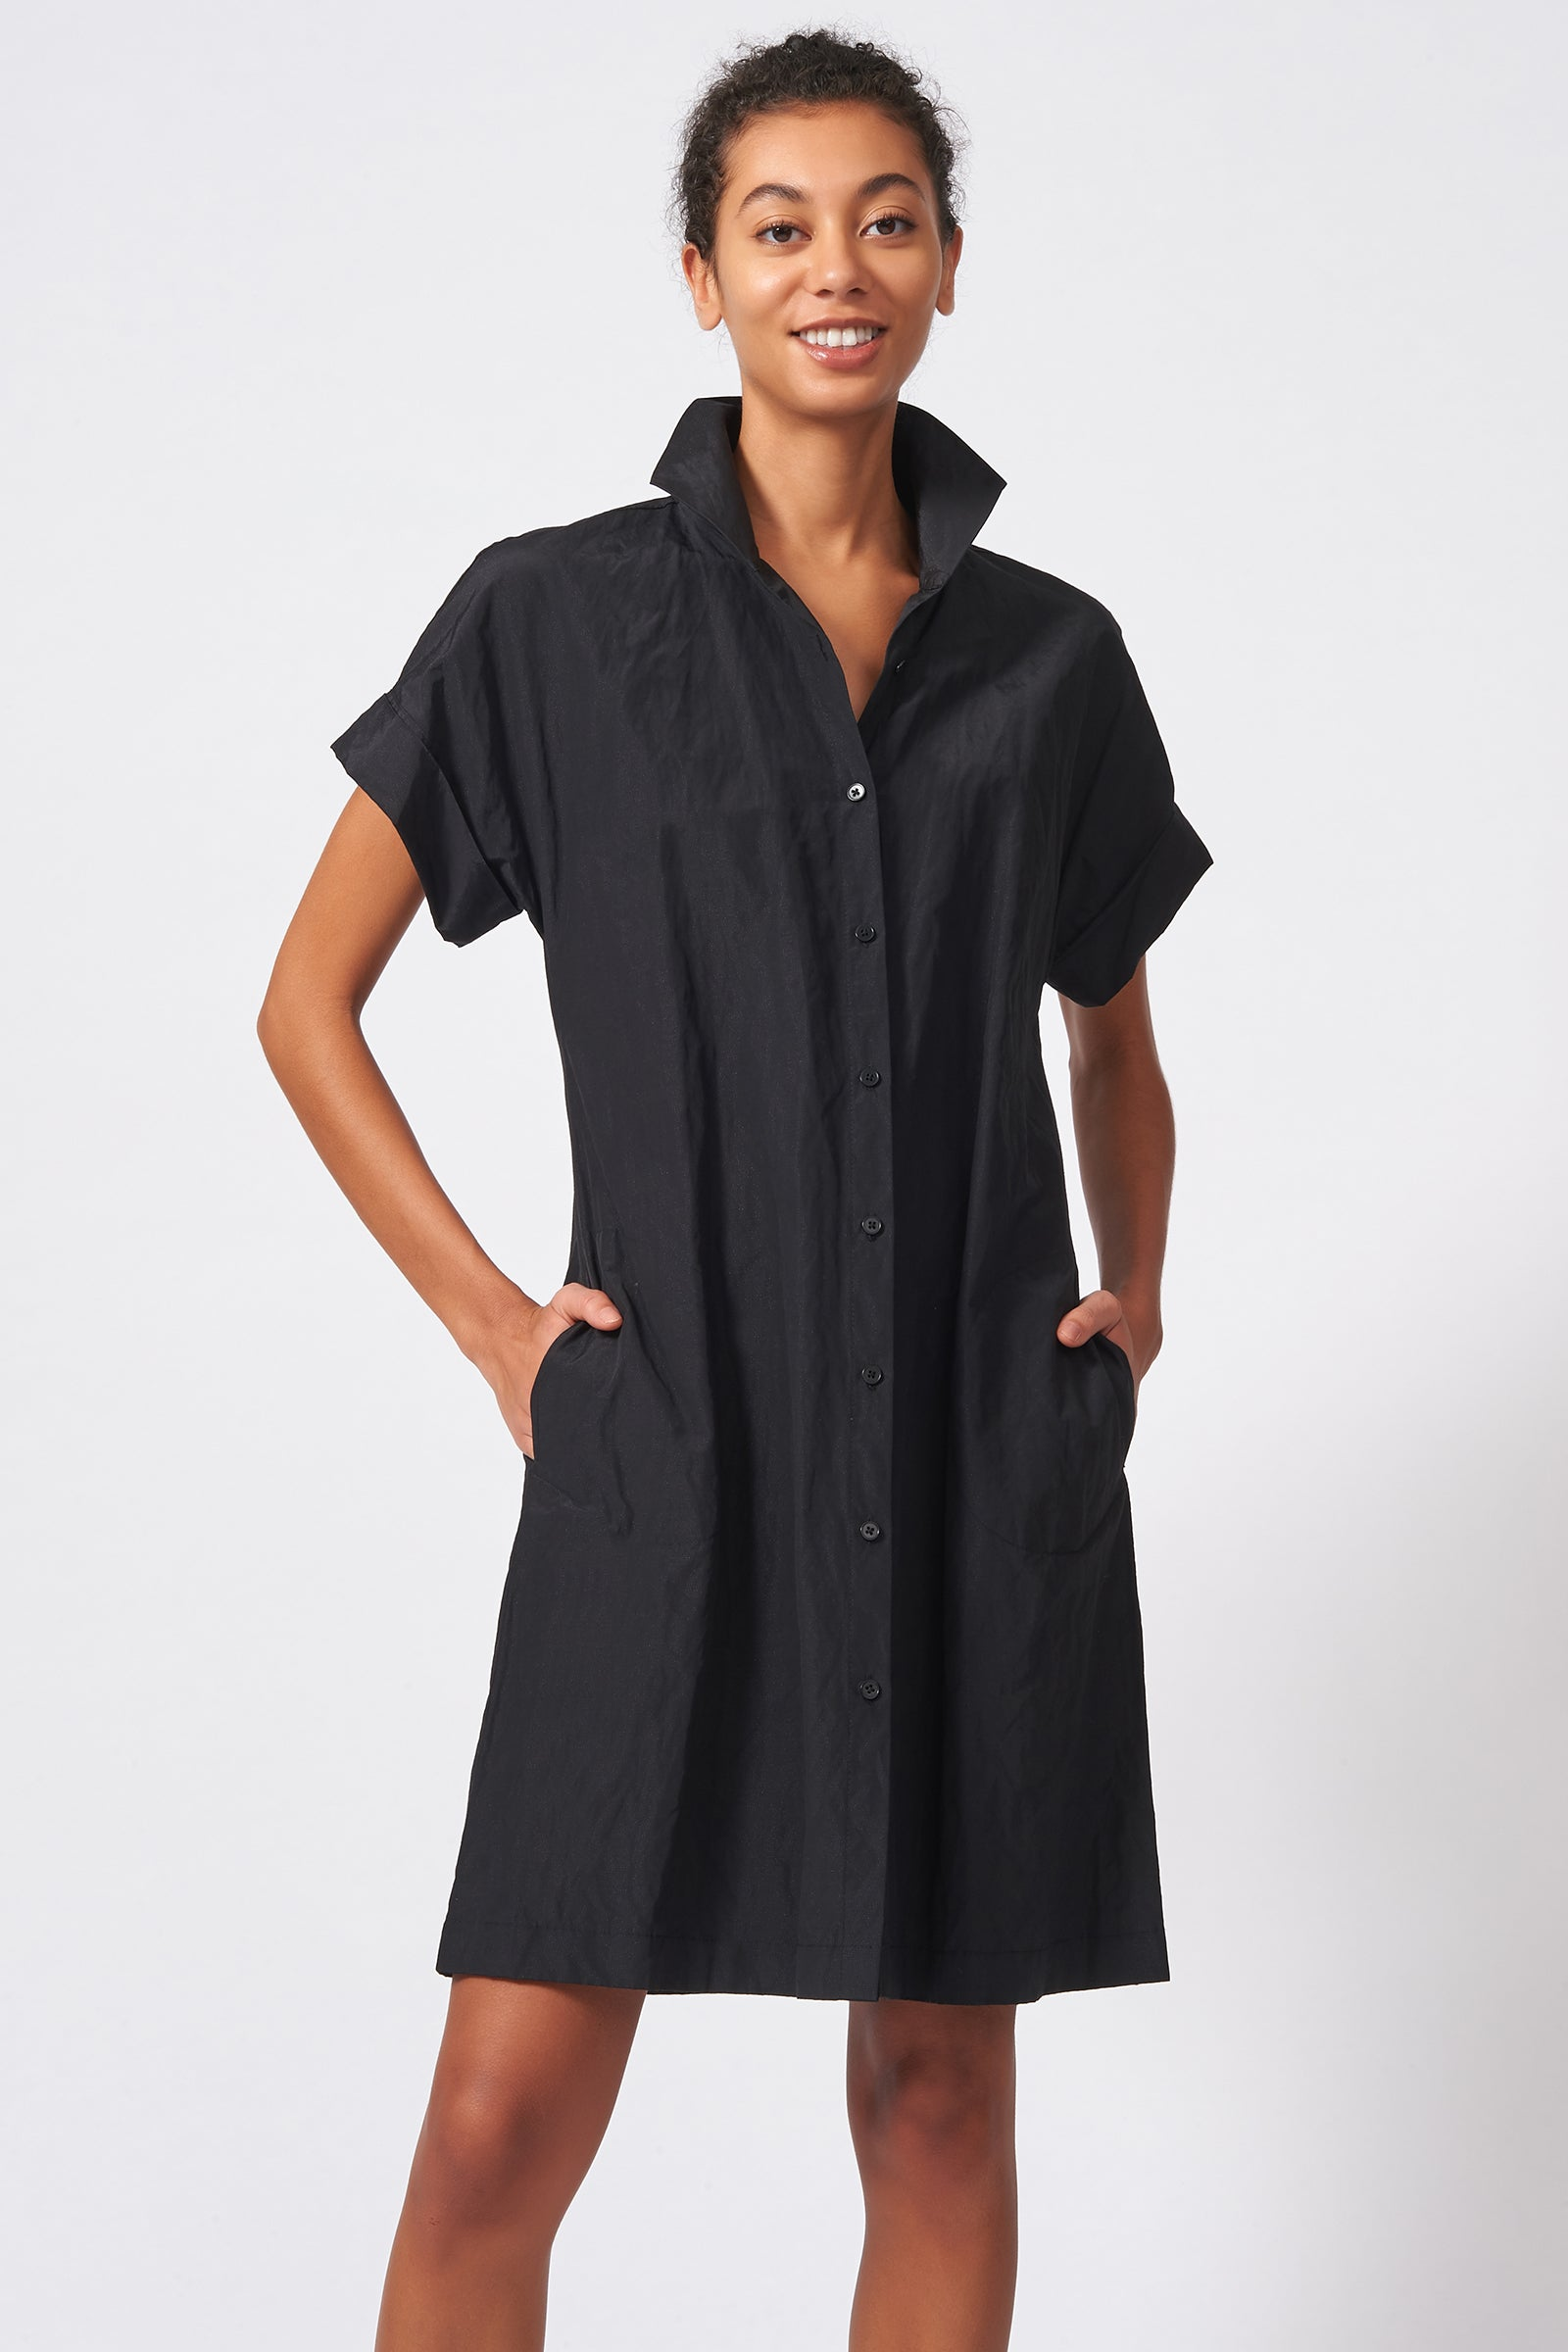 Kal Rieman Kimono Shirt Dress Cotton Nylon in Black on Model Front View